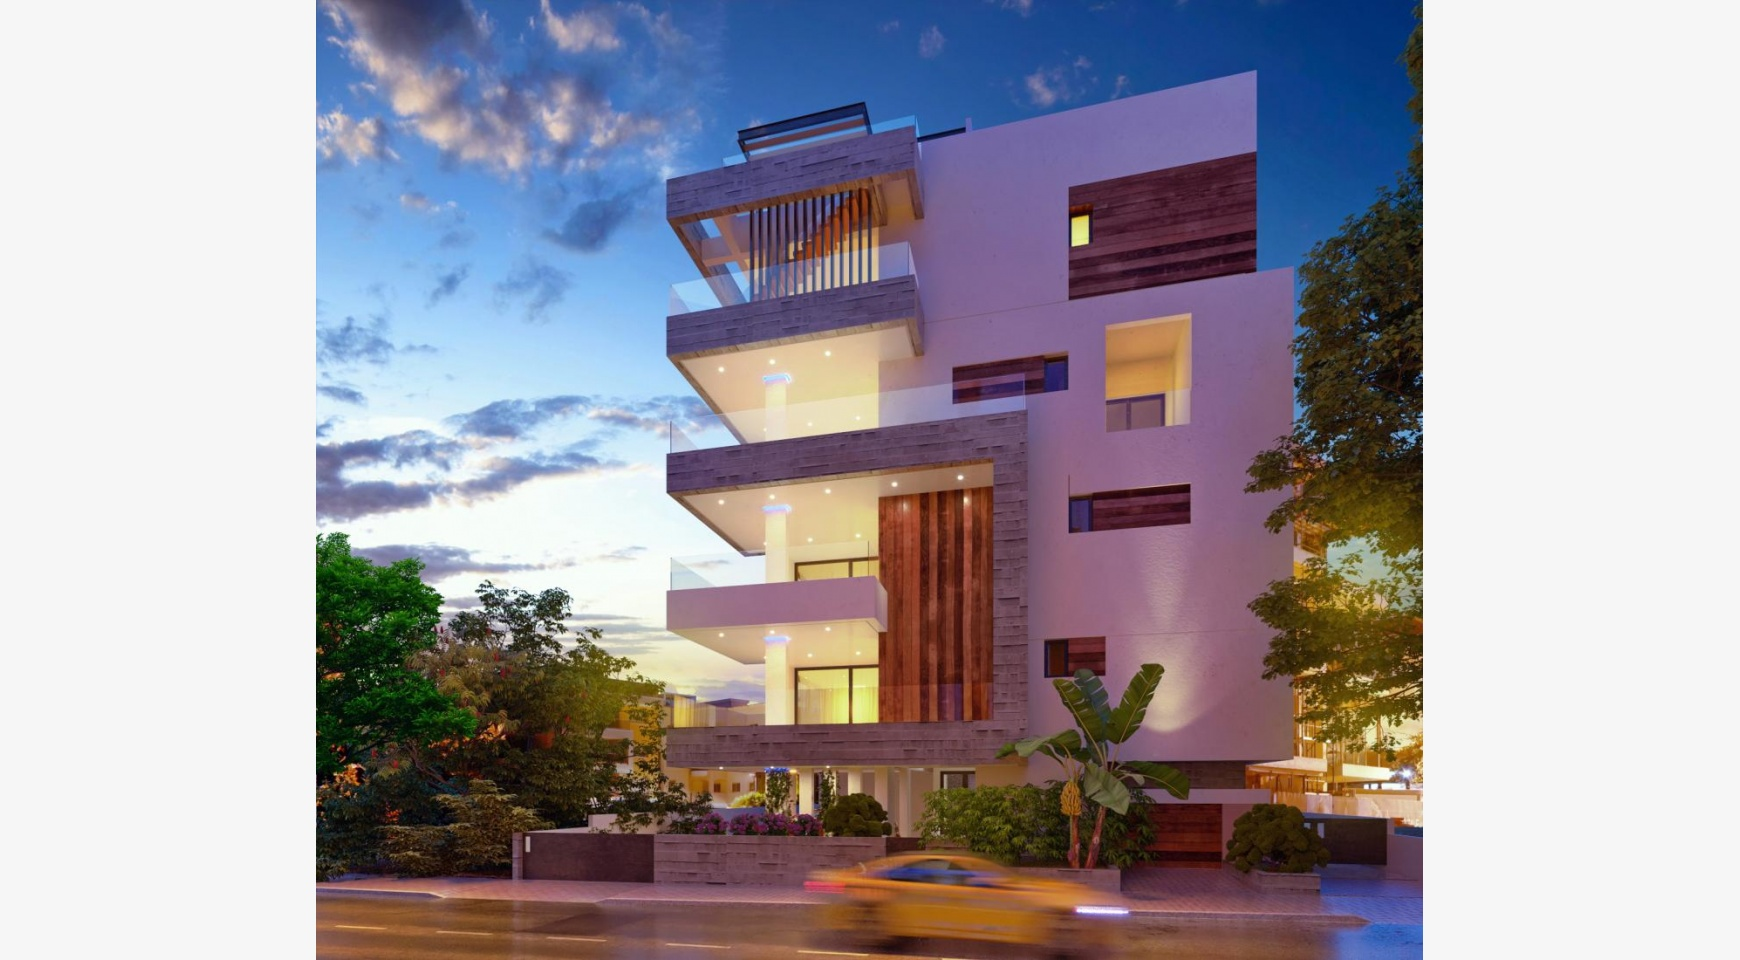 3 Bedroom Penthouse with a Private Pool in a Contemporary Building near the Sea - 2